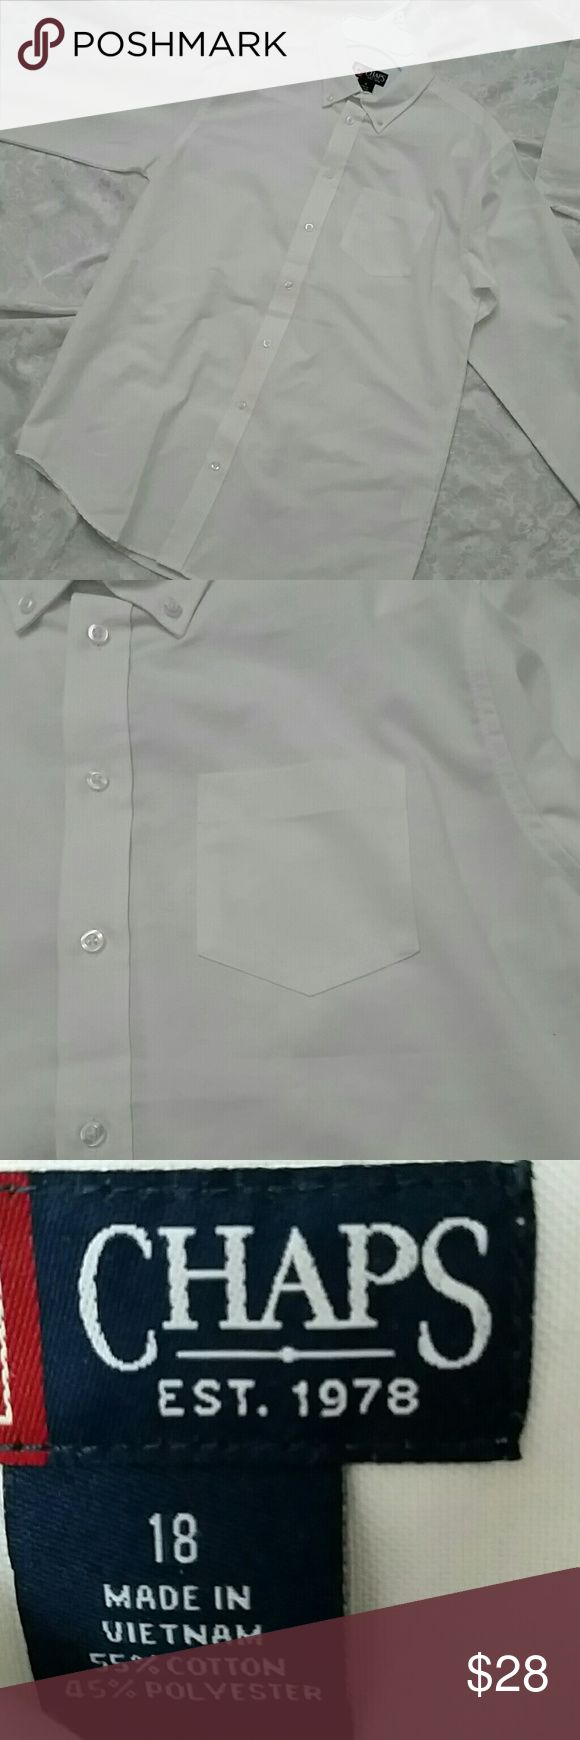 Chaps boys white long button down shirt size 18 White Chaps long sleeve, white button down shirt, brand new with tags. Never worn. Perfect condition! Measures 28 inches shoulder to bottom hem, 20 inches armpit to armpit, 23 inches sleeve. BOYS Chaps Shirts & Tops Button Down Shirts